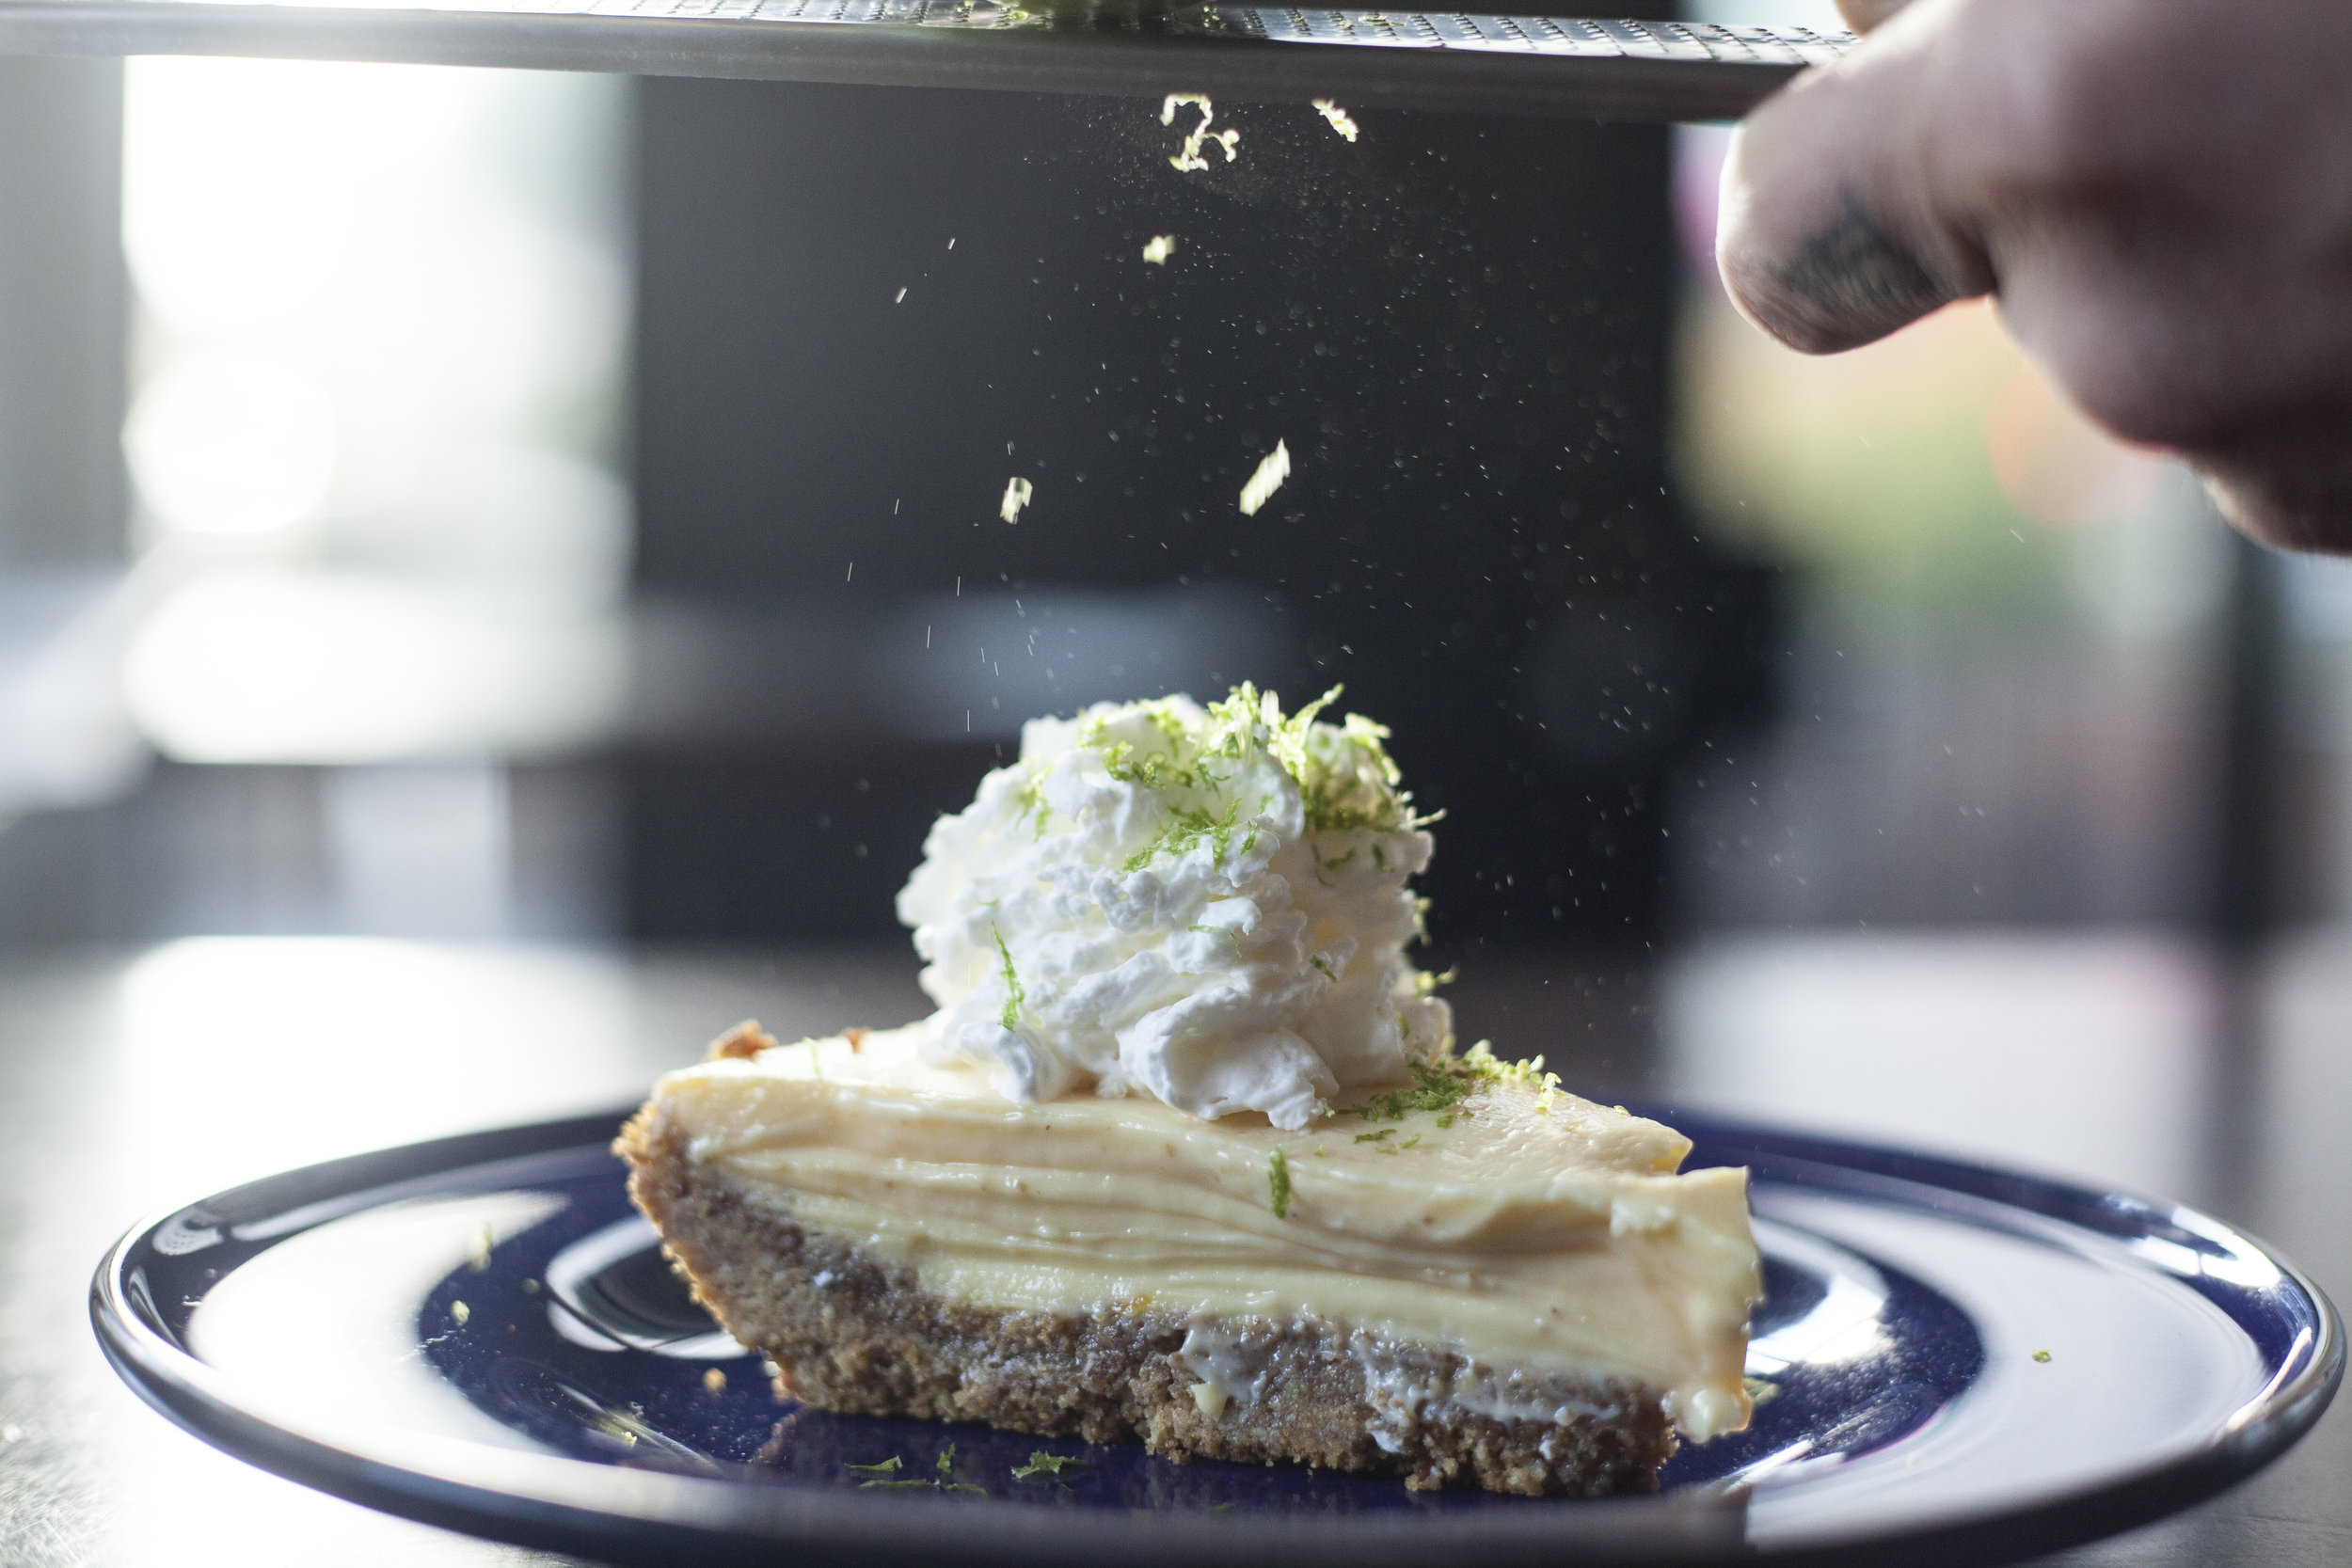 KASSADY'S MAMA'S KEY LIME PIE - secret recipe, served with whipped cream (contains nuts, limited availability)